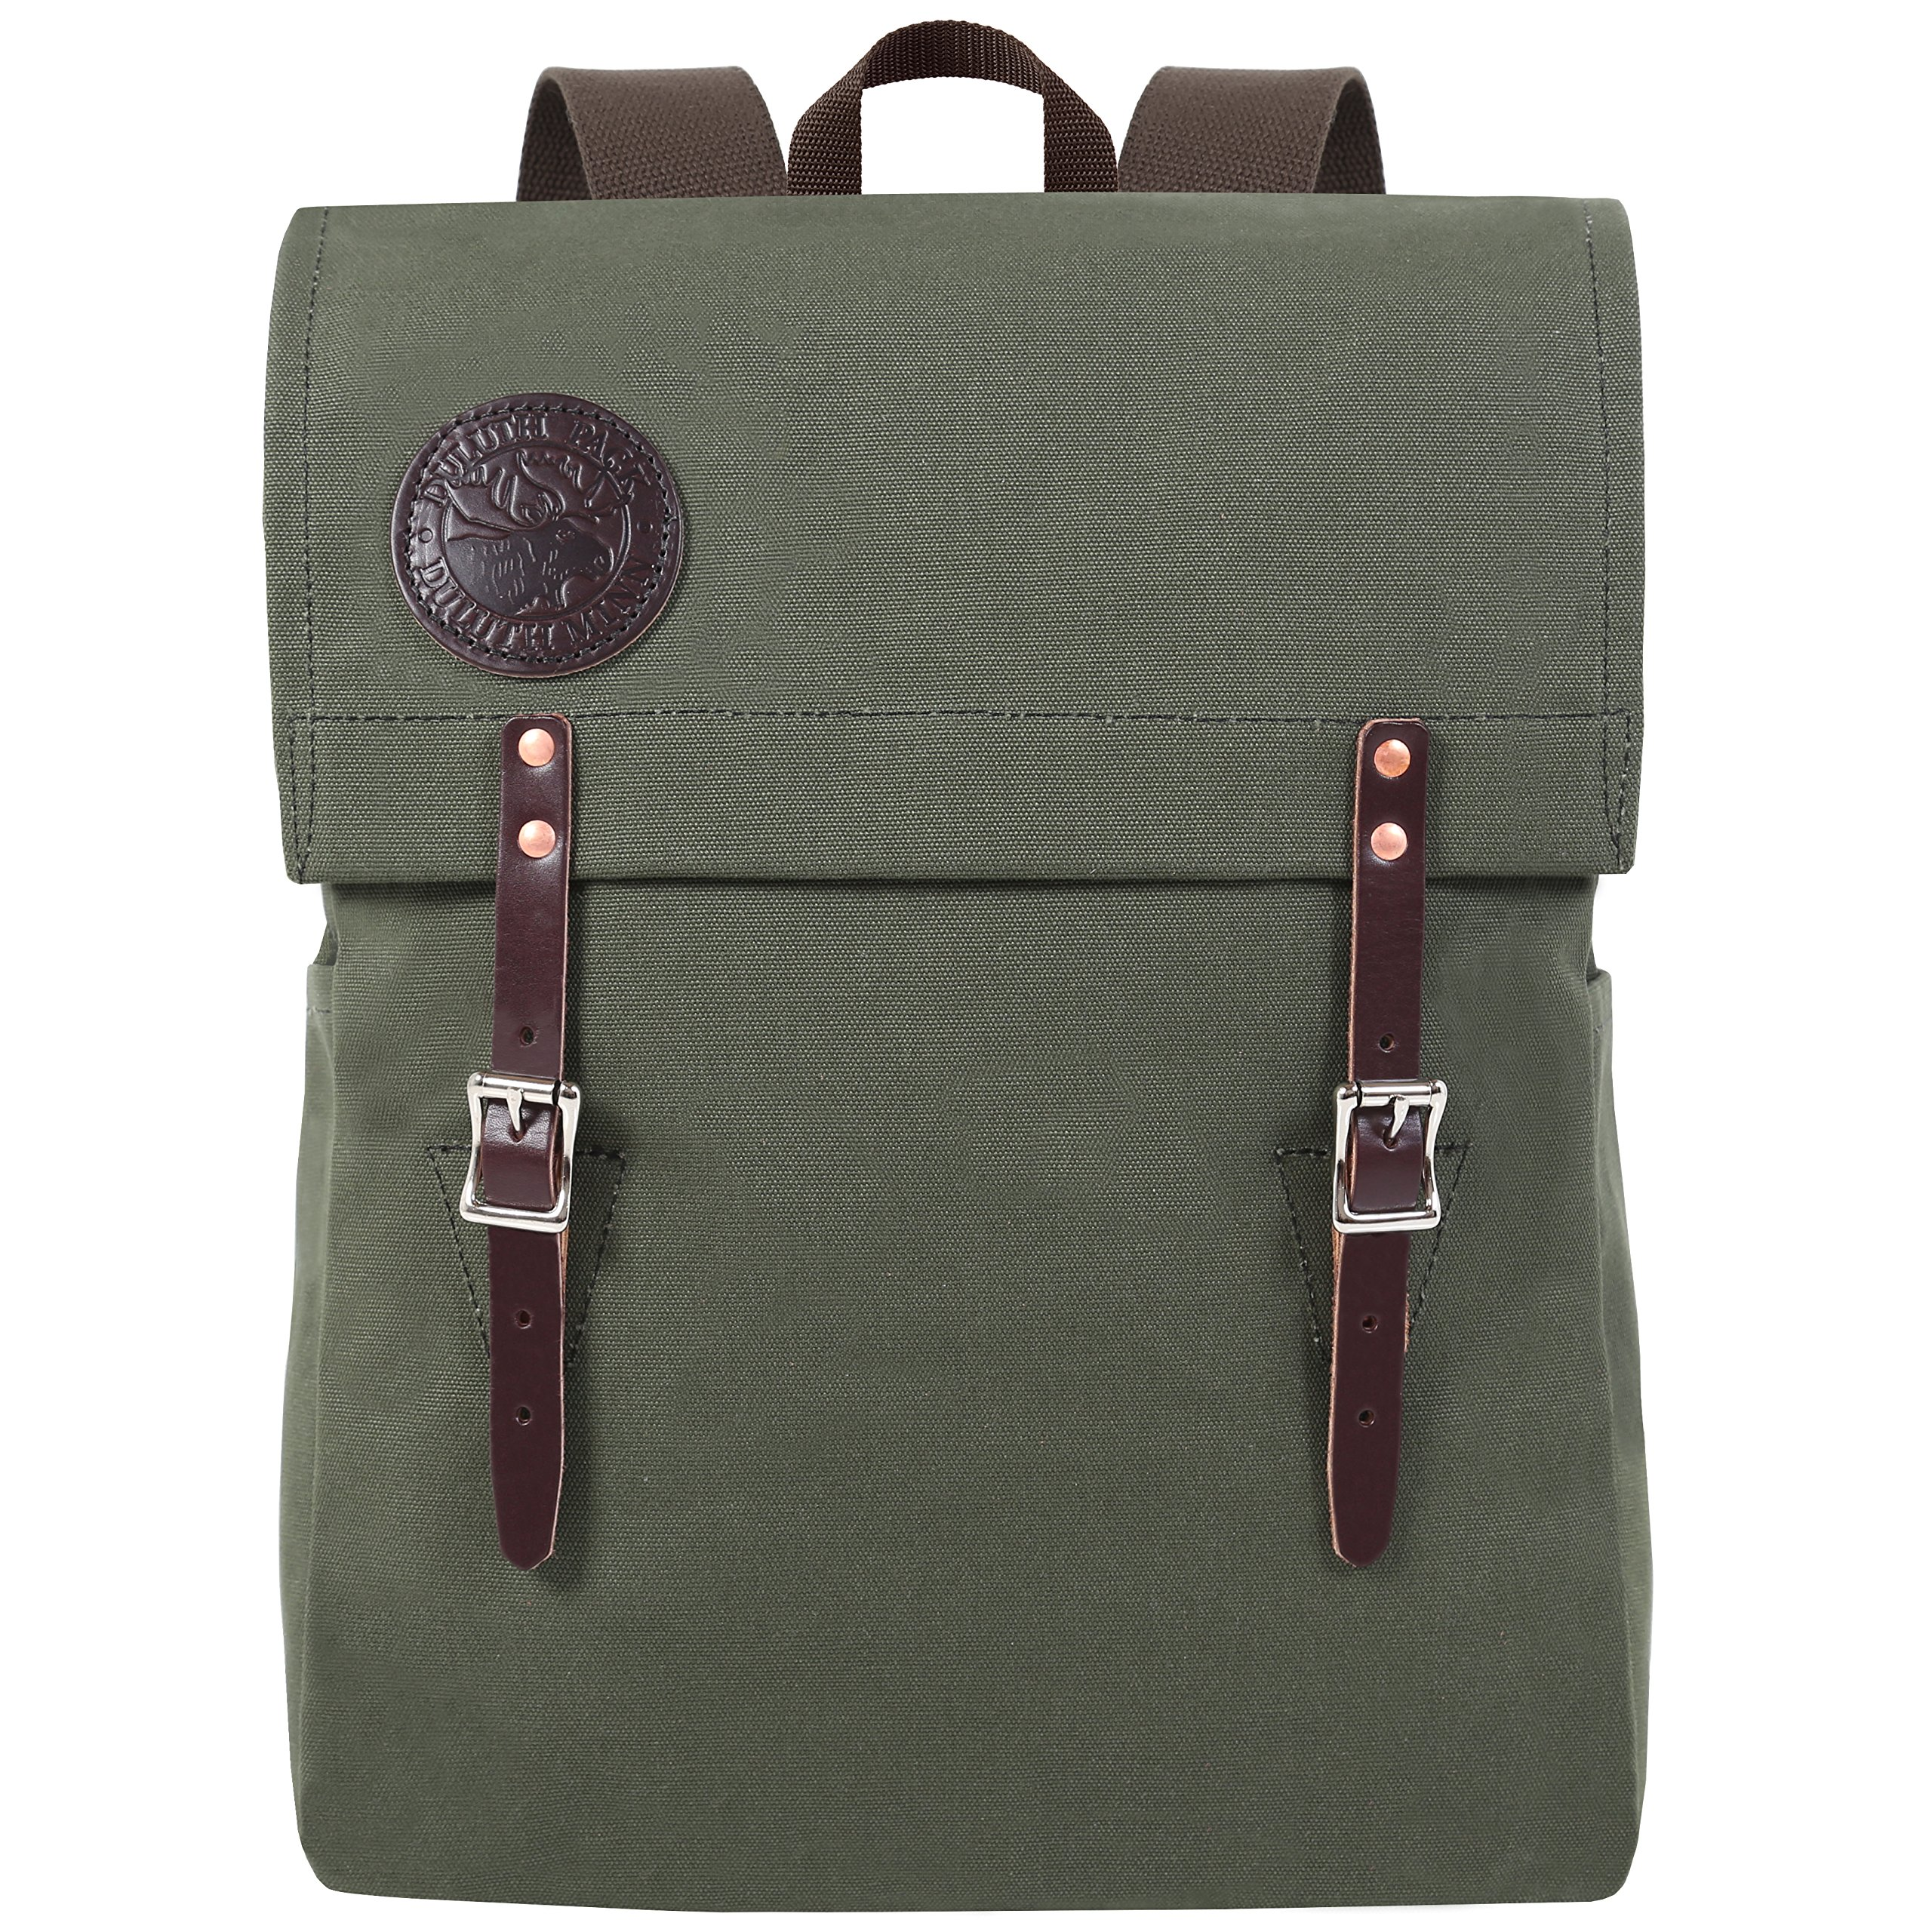 Duluth Pack Scoutmaster Pack (Olive Drab)